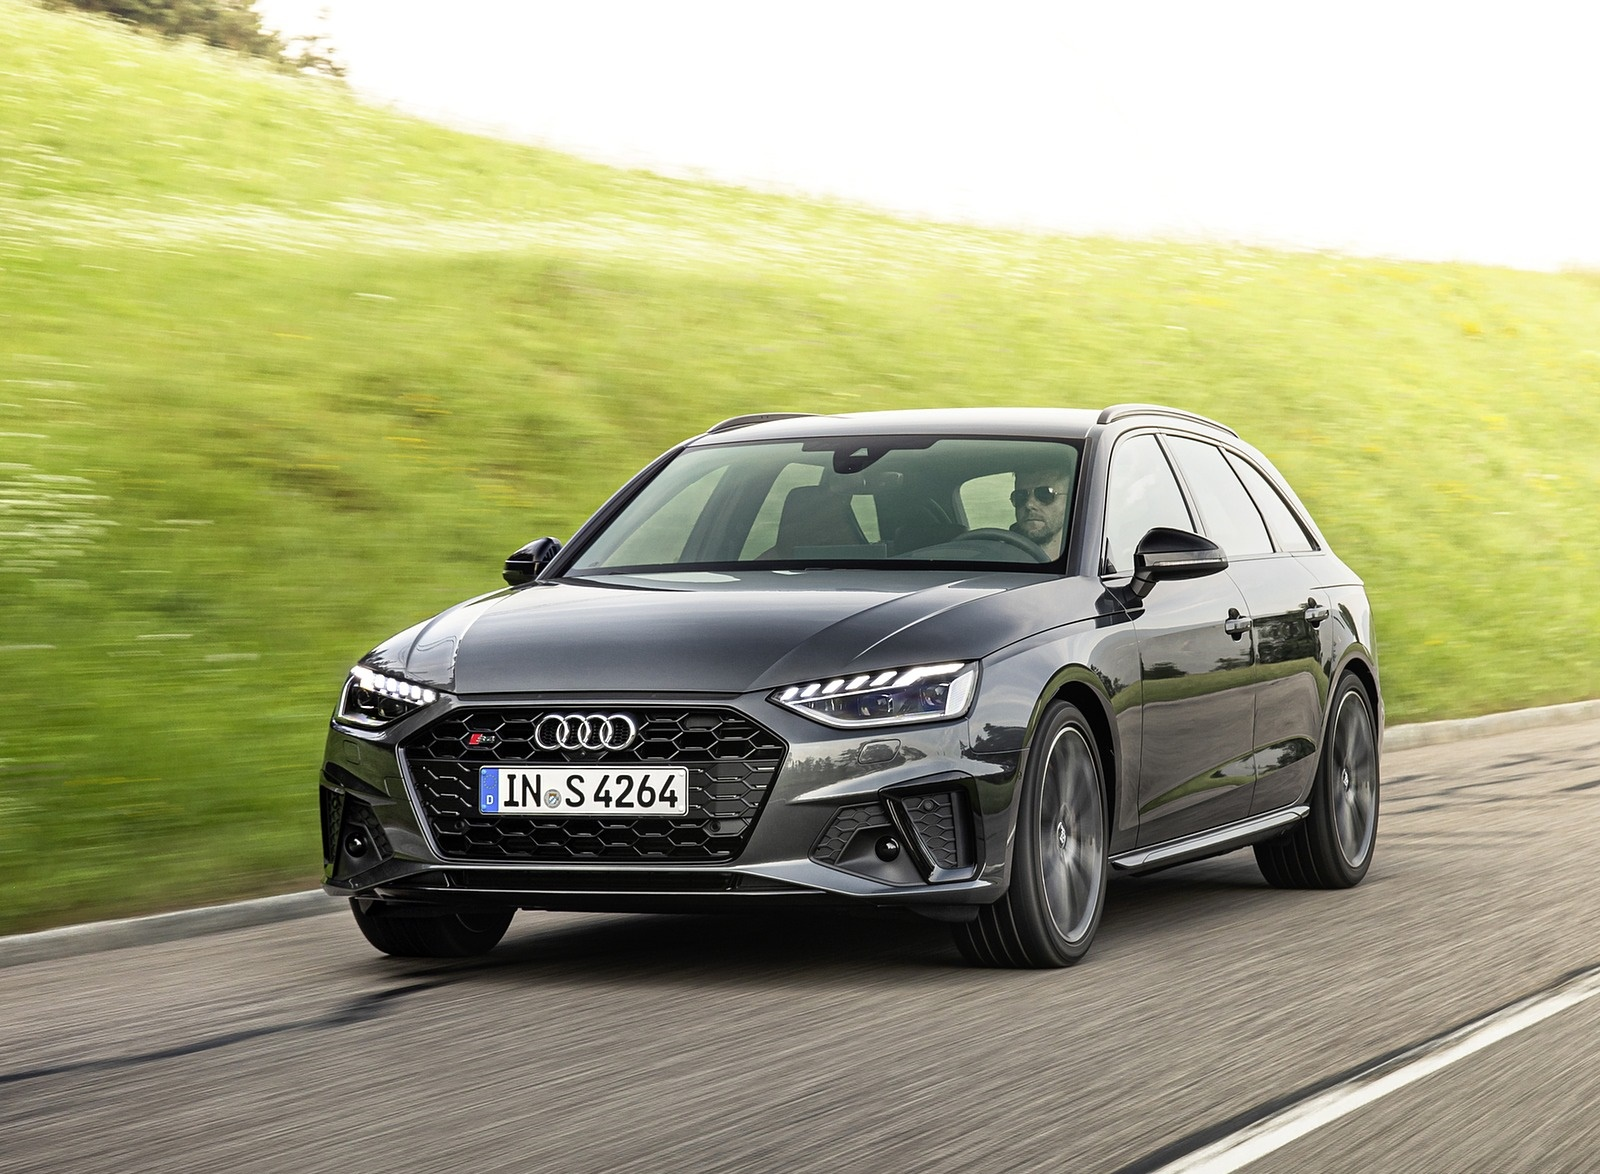 2019 Audi S4 Avant TDI (Color: Daytona Gray) Front Three-Quarter Wallpapers (3)